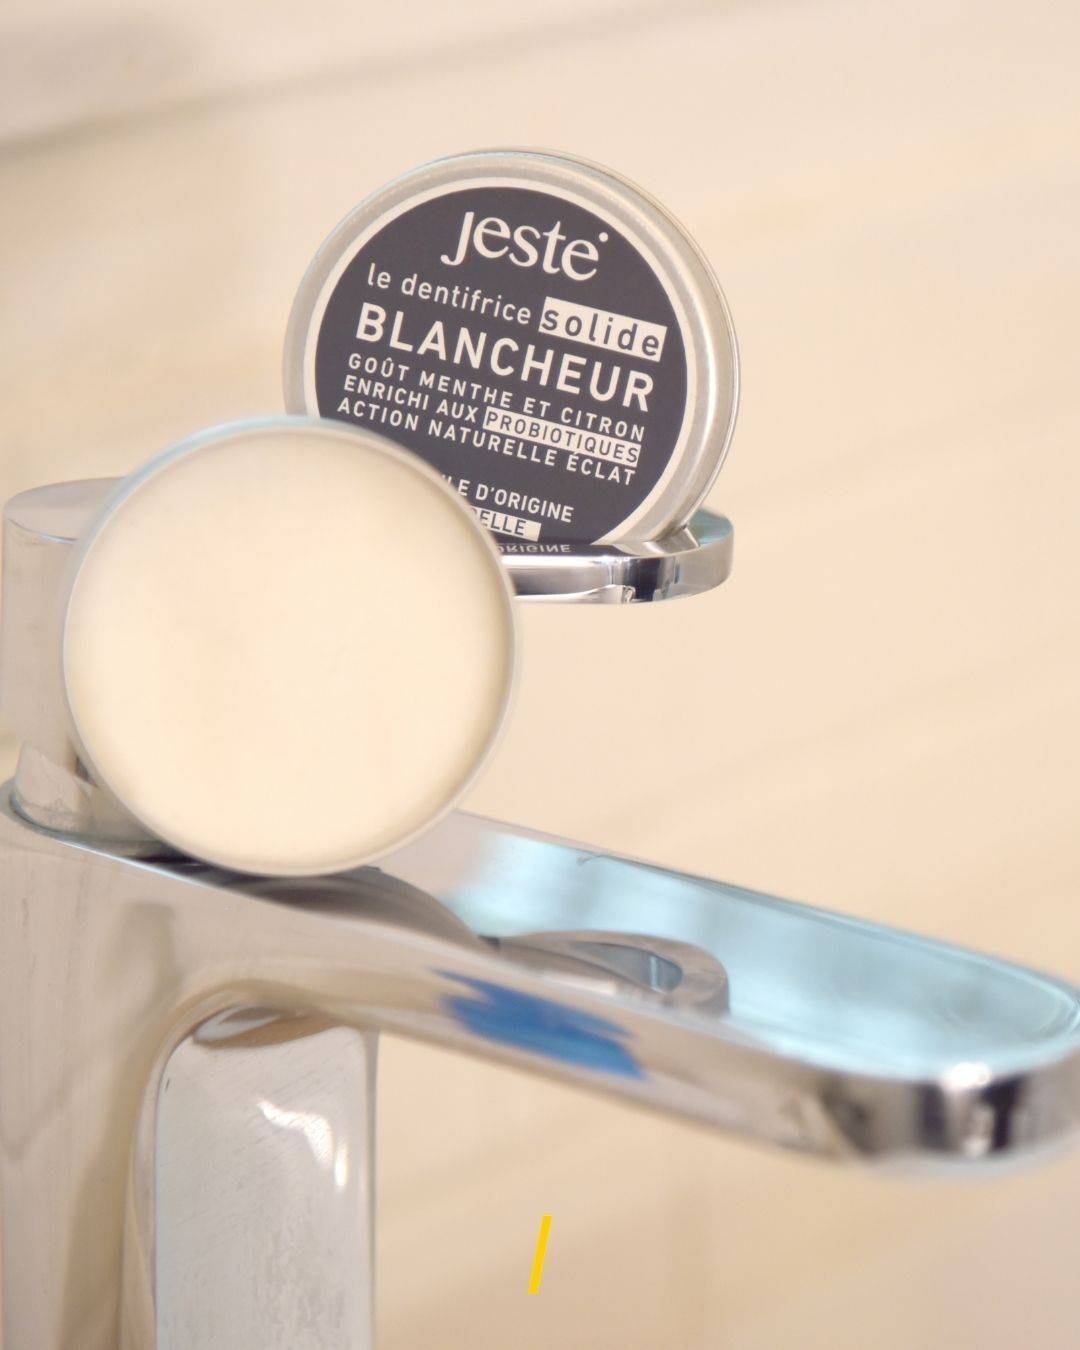 Dentifrice solide blancheur - The Trust Society